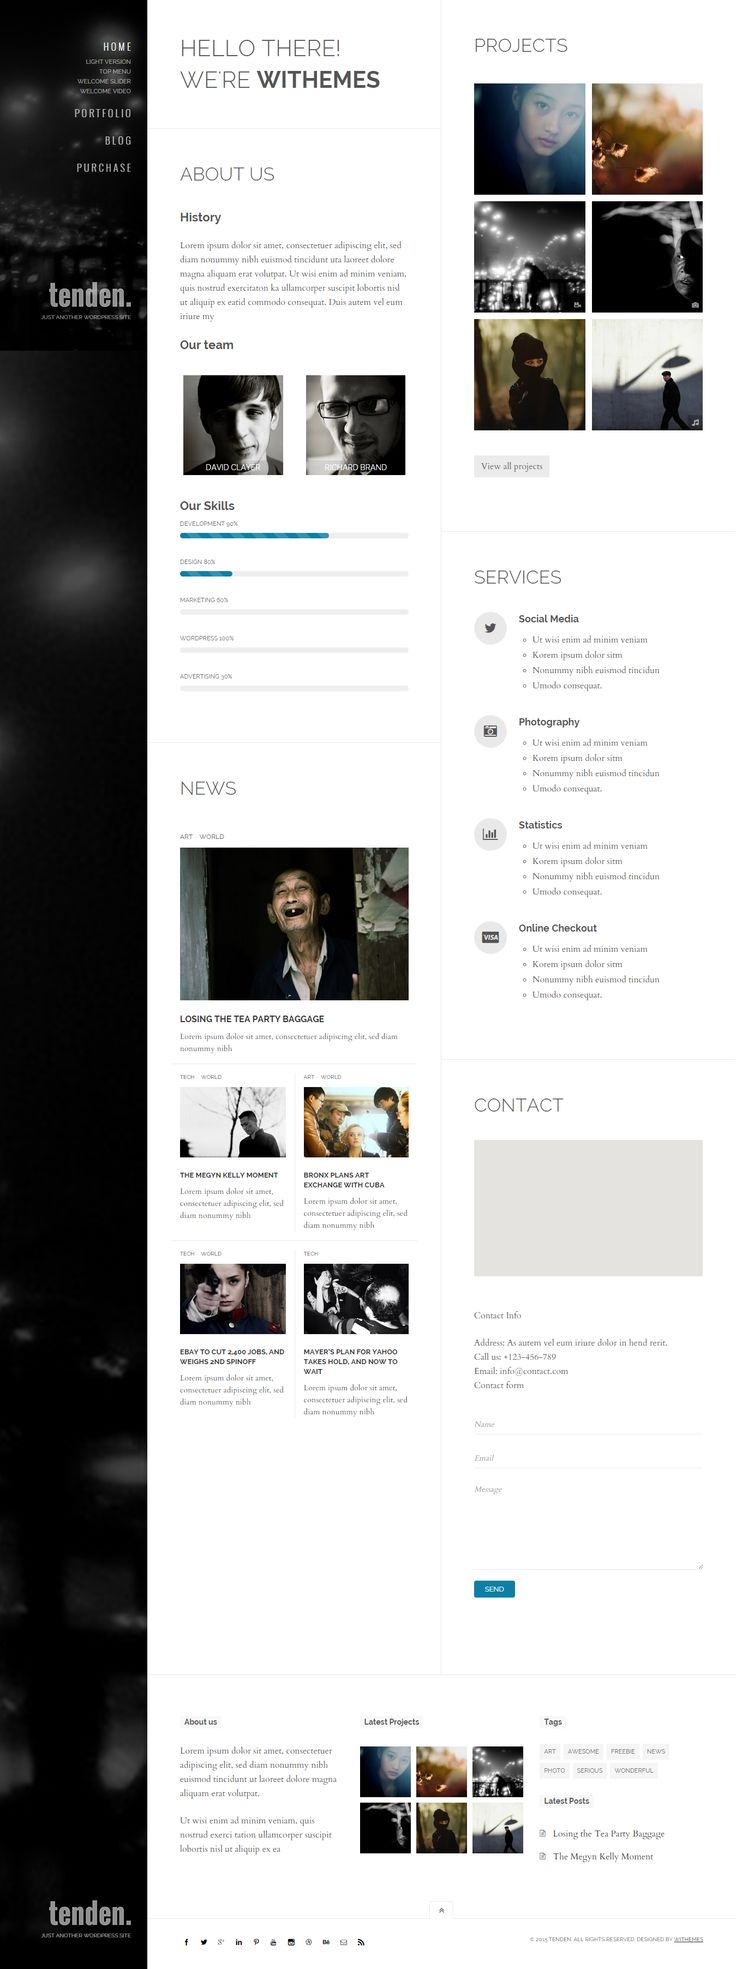 Tenden is a simple, clean & creative layout Wordpress theme. View more here! Elegant & clean design: Minimalistic design focused on readability. All content is readable and can not be hidden anyway.